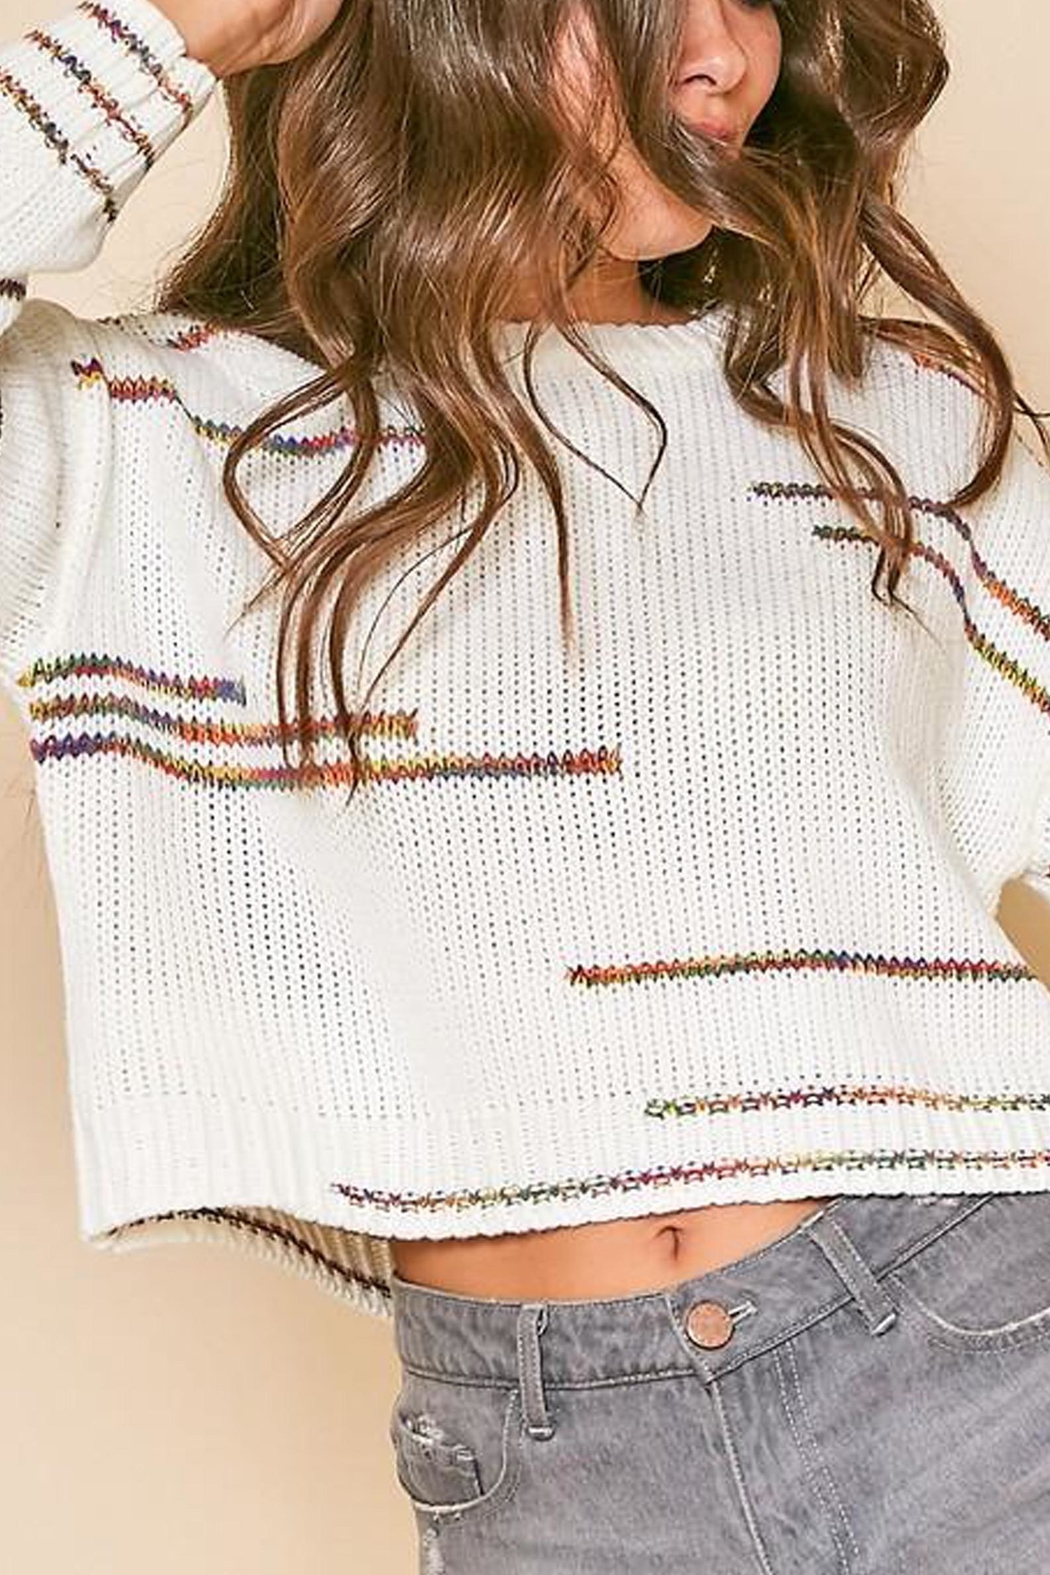 Peach Love California Graphic-Line Cropped Knit-Sweater - Front Full Image